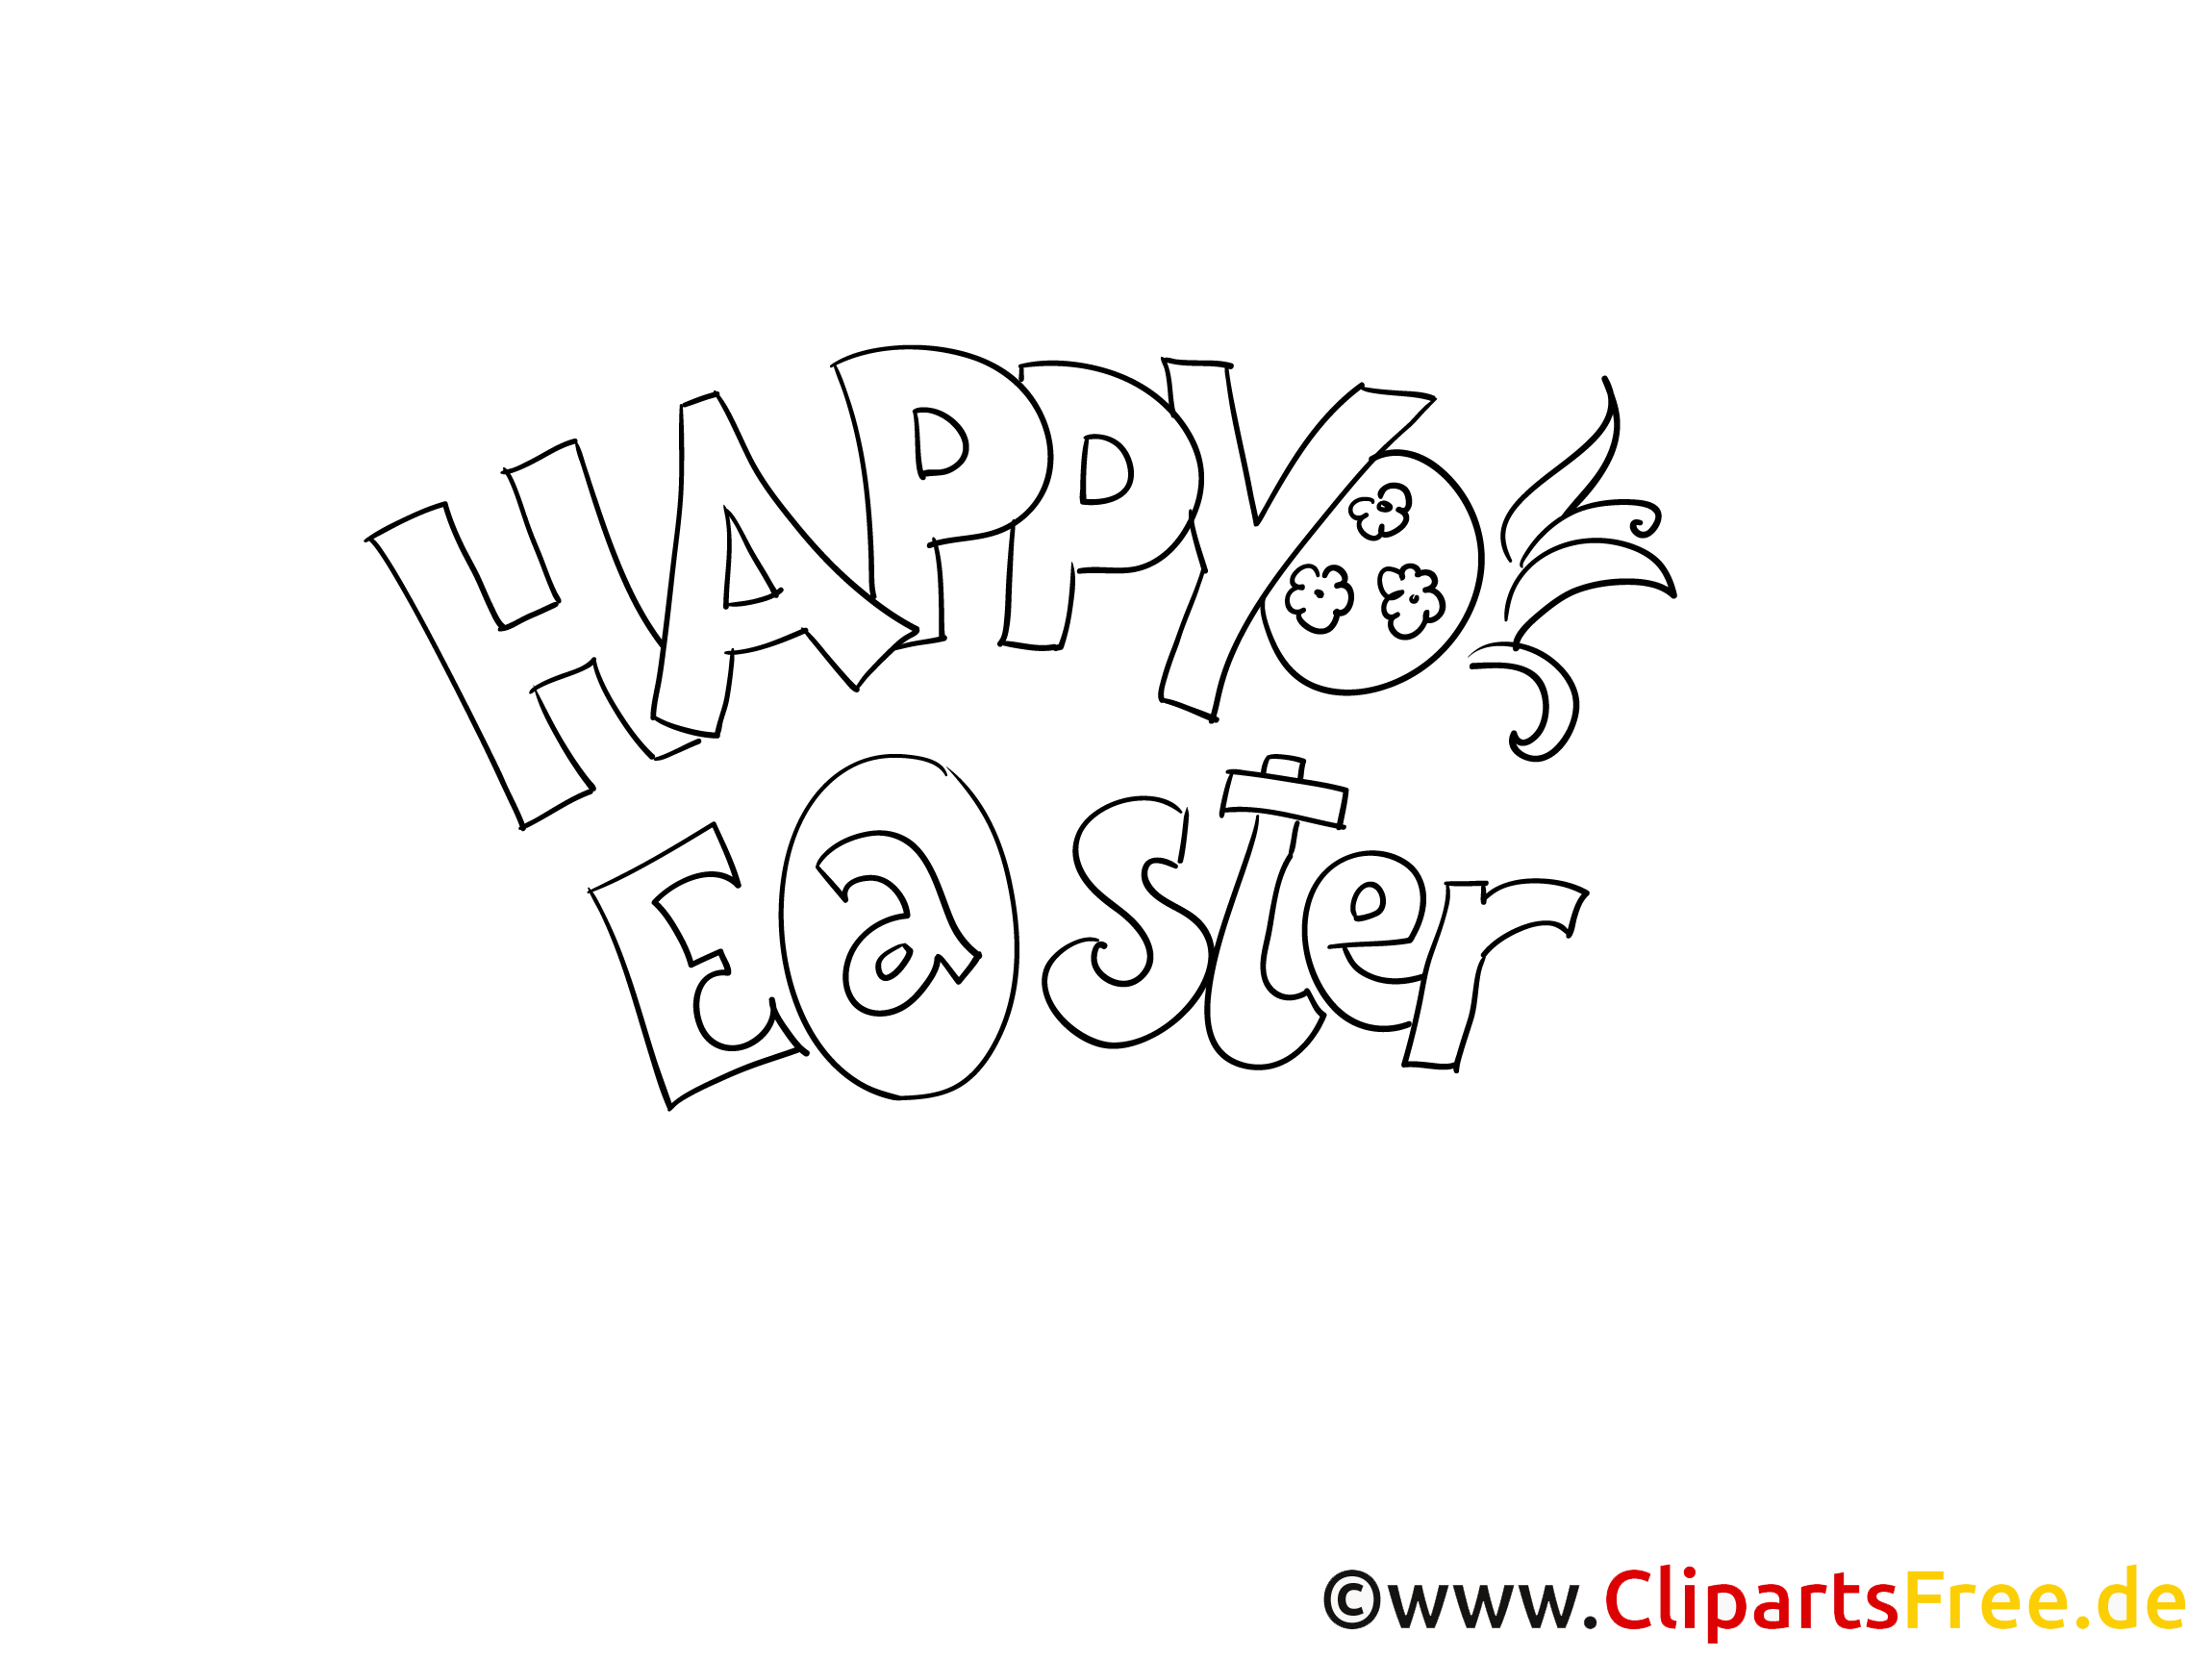 Happy Easter printable Image to color